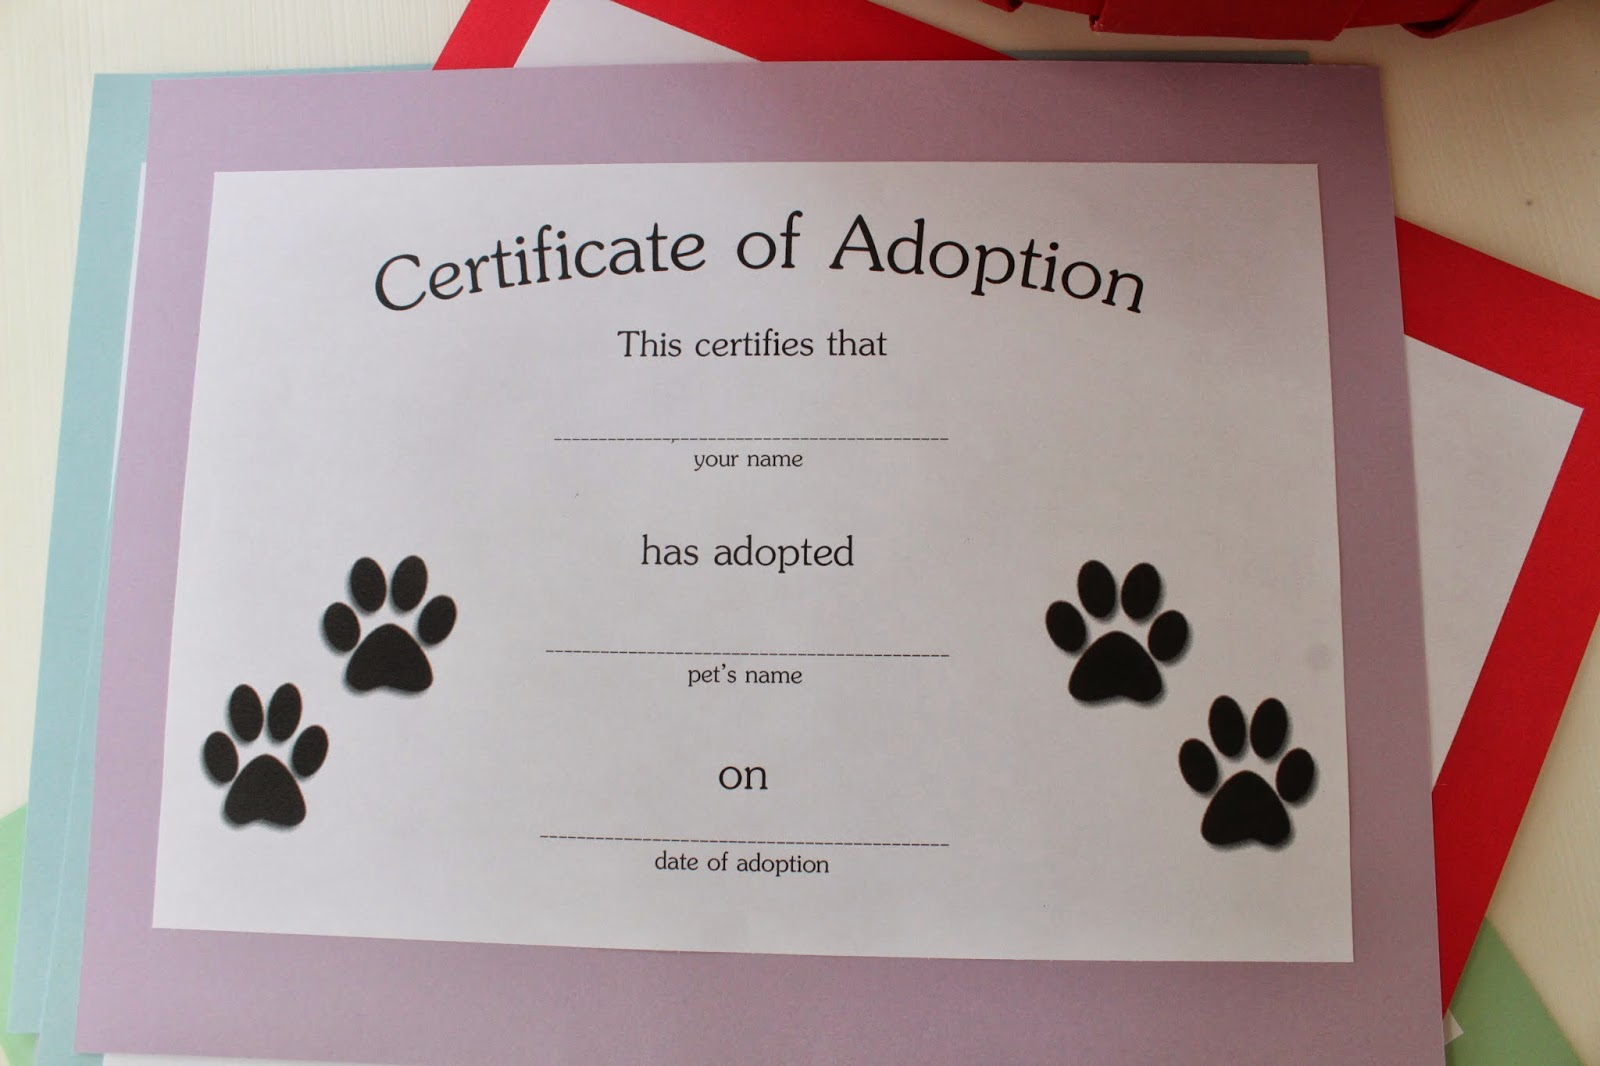 adoption certificate template - keeping up with the kiddos puppy dog kitty cat birthday